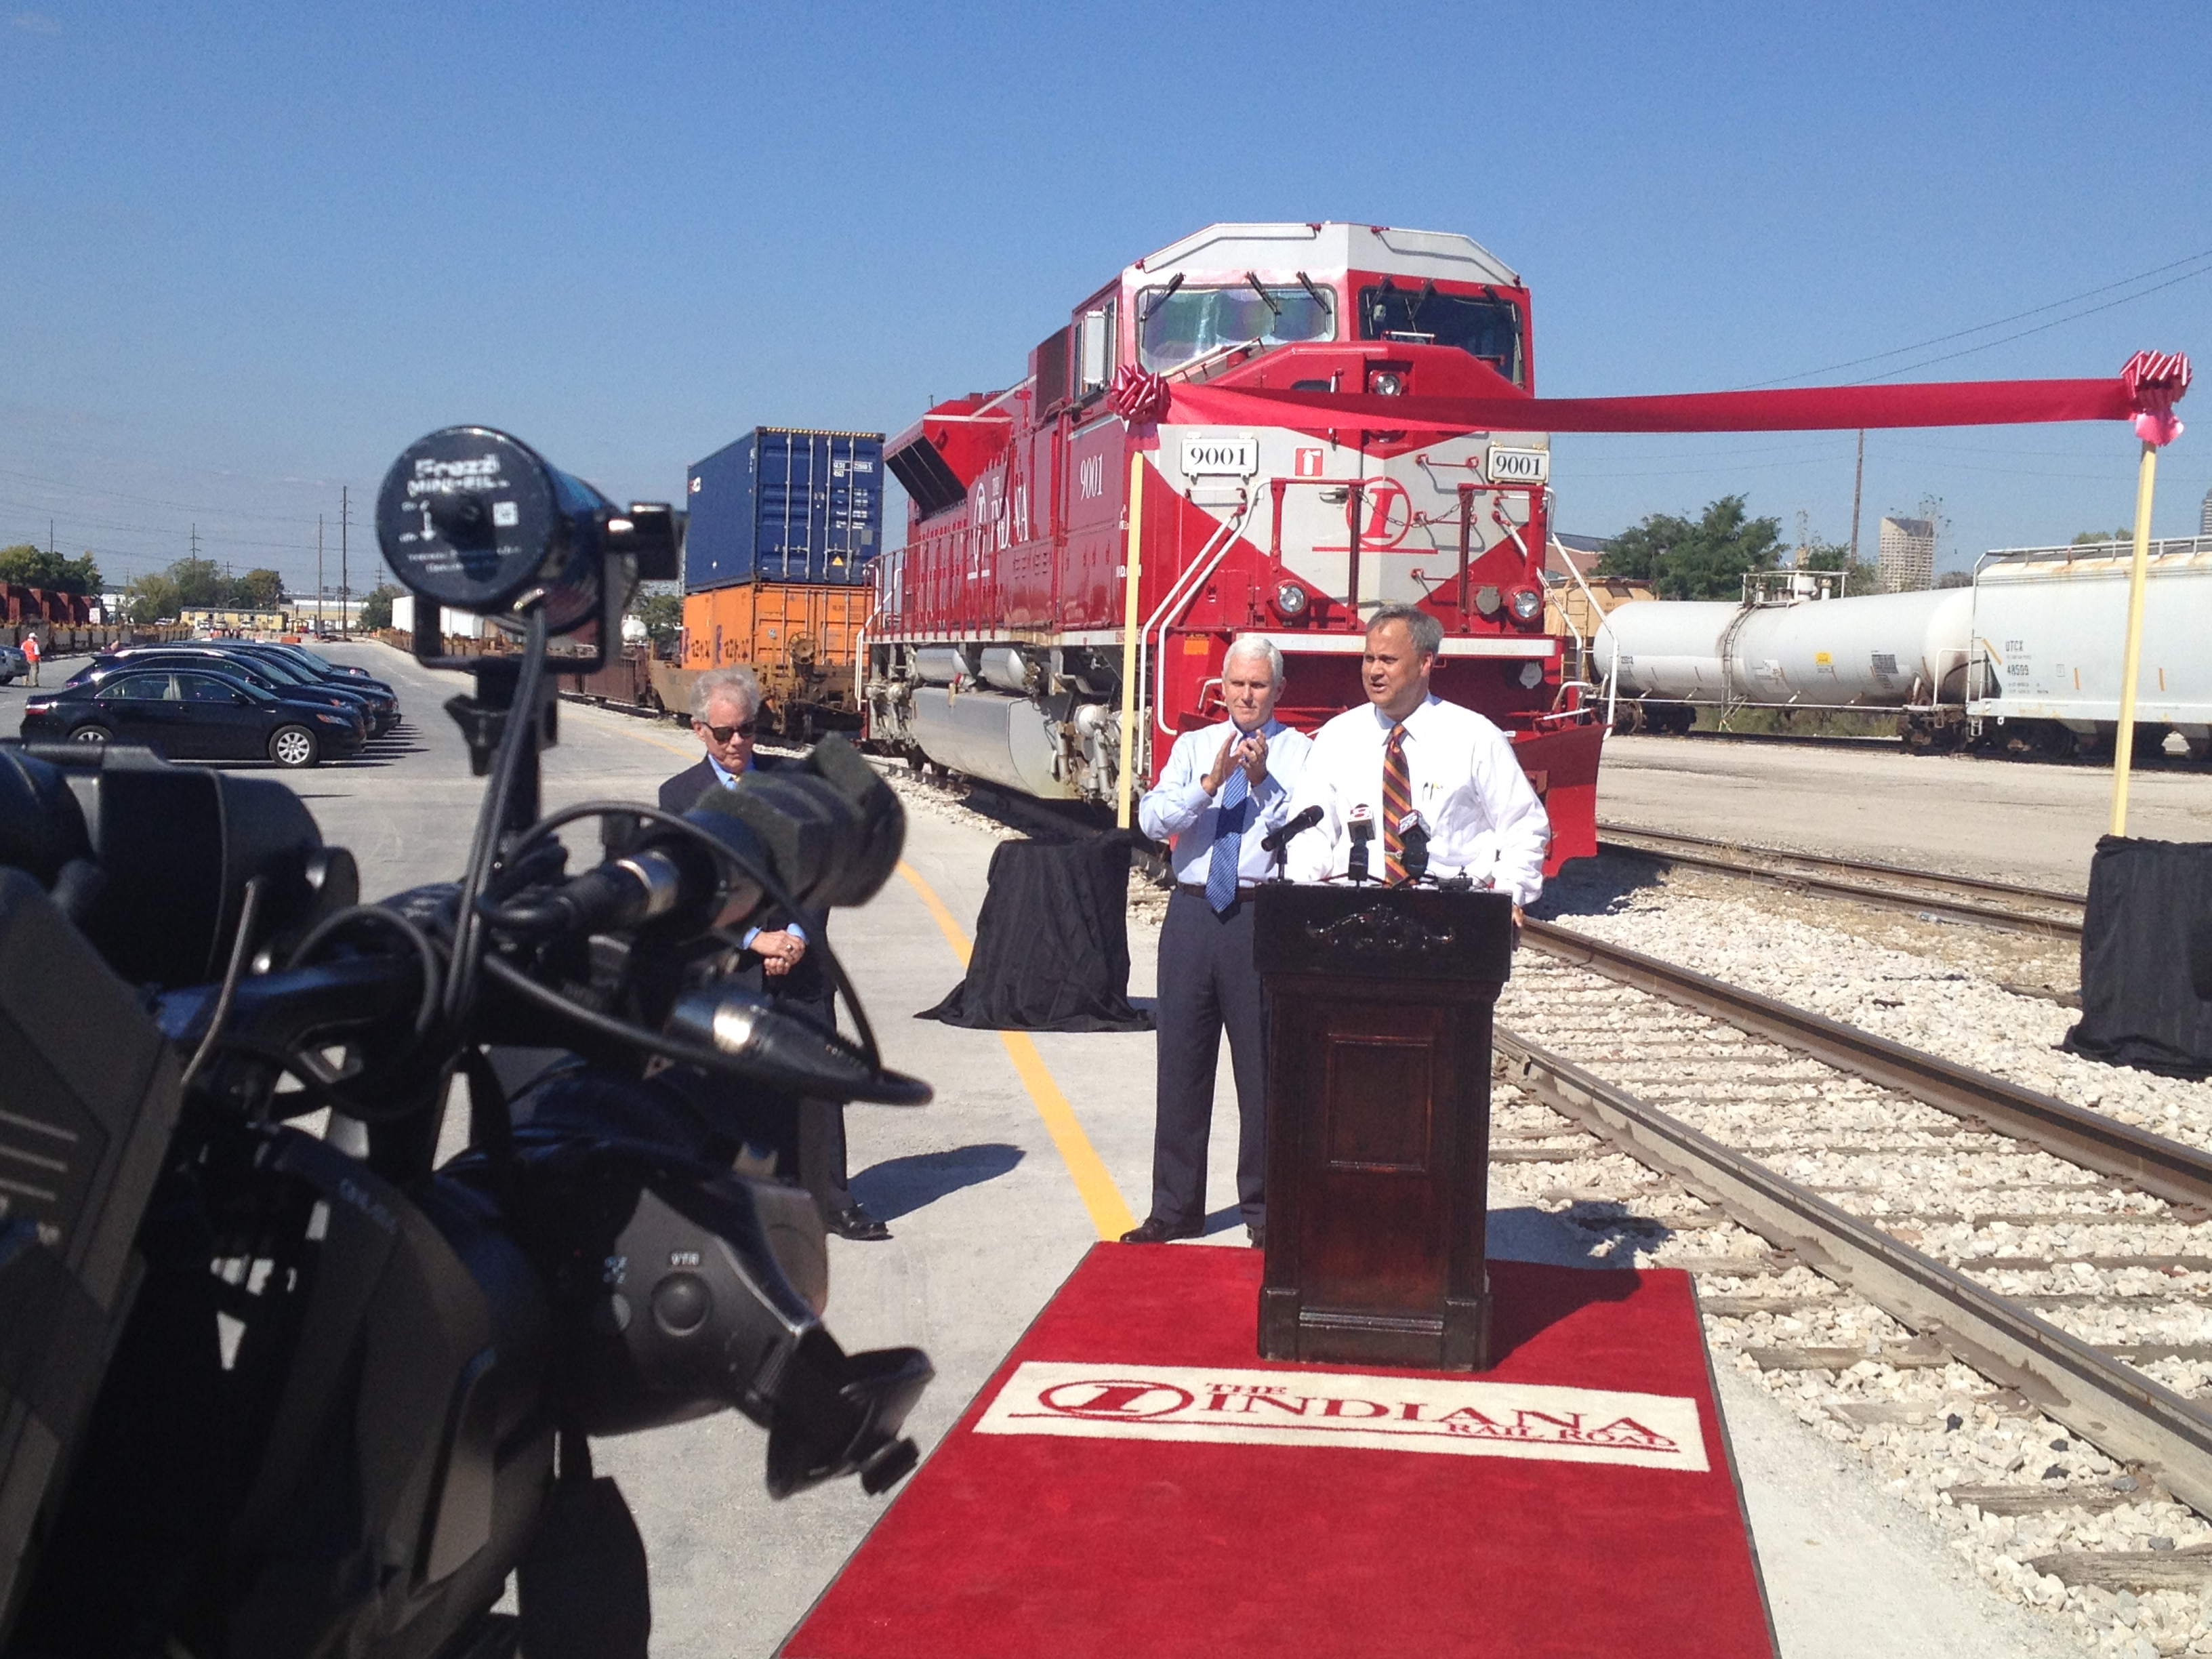 Announcing the opening of the new INRD/CN Intermodal Center